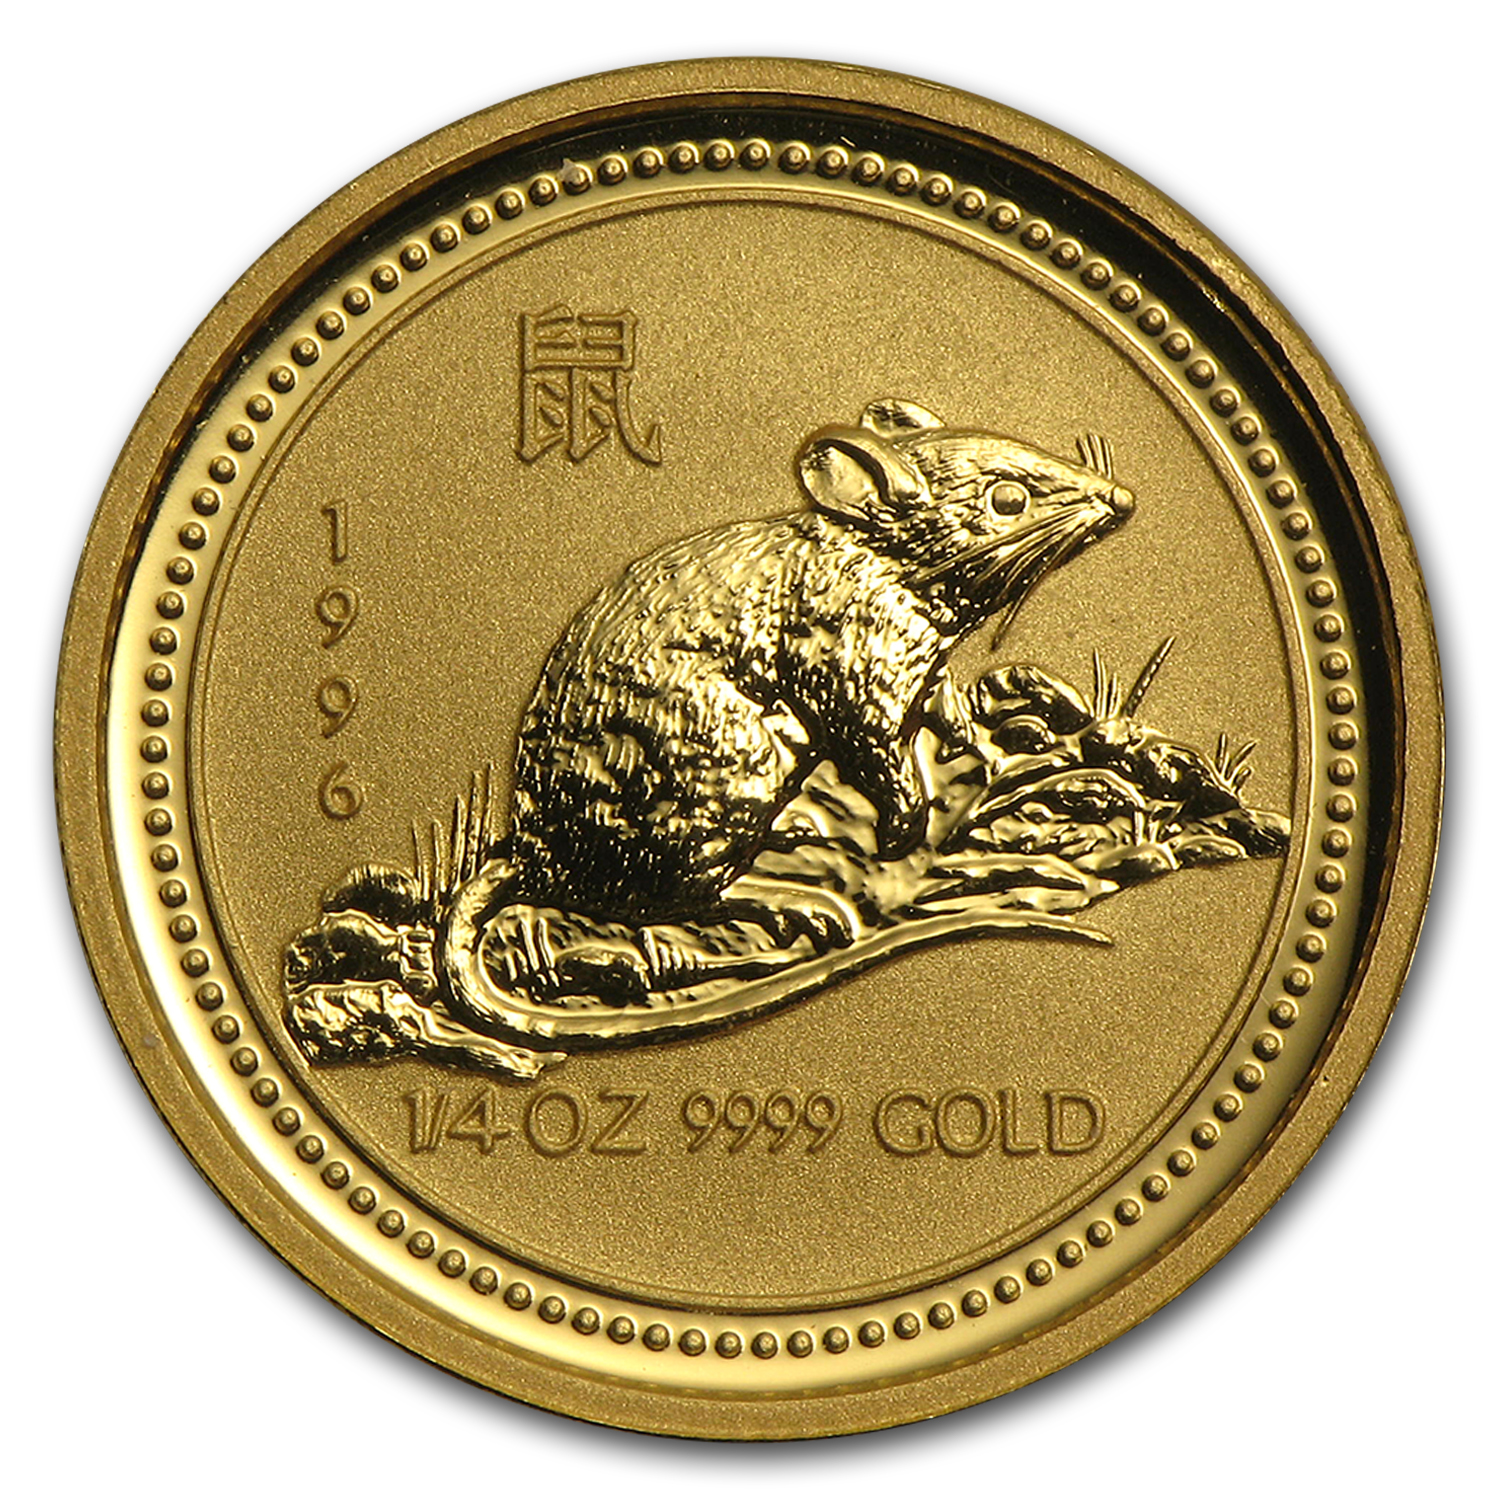 1996 Australia 1/4 oz Gold Lunar Rat (Series I)